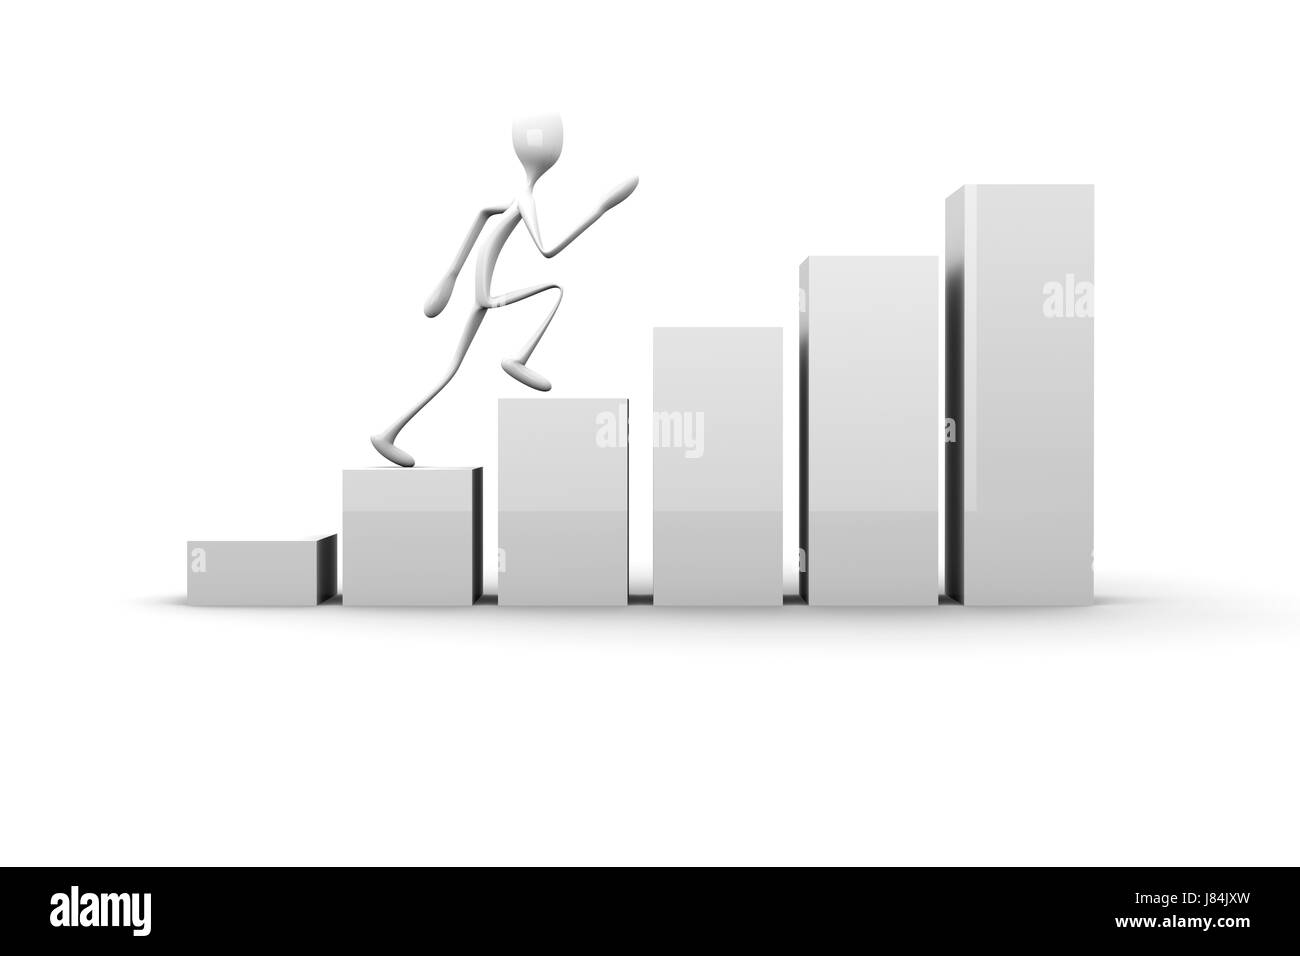 walk go going walking presentation successful succesful chart graphic person Stock Photo